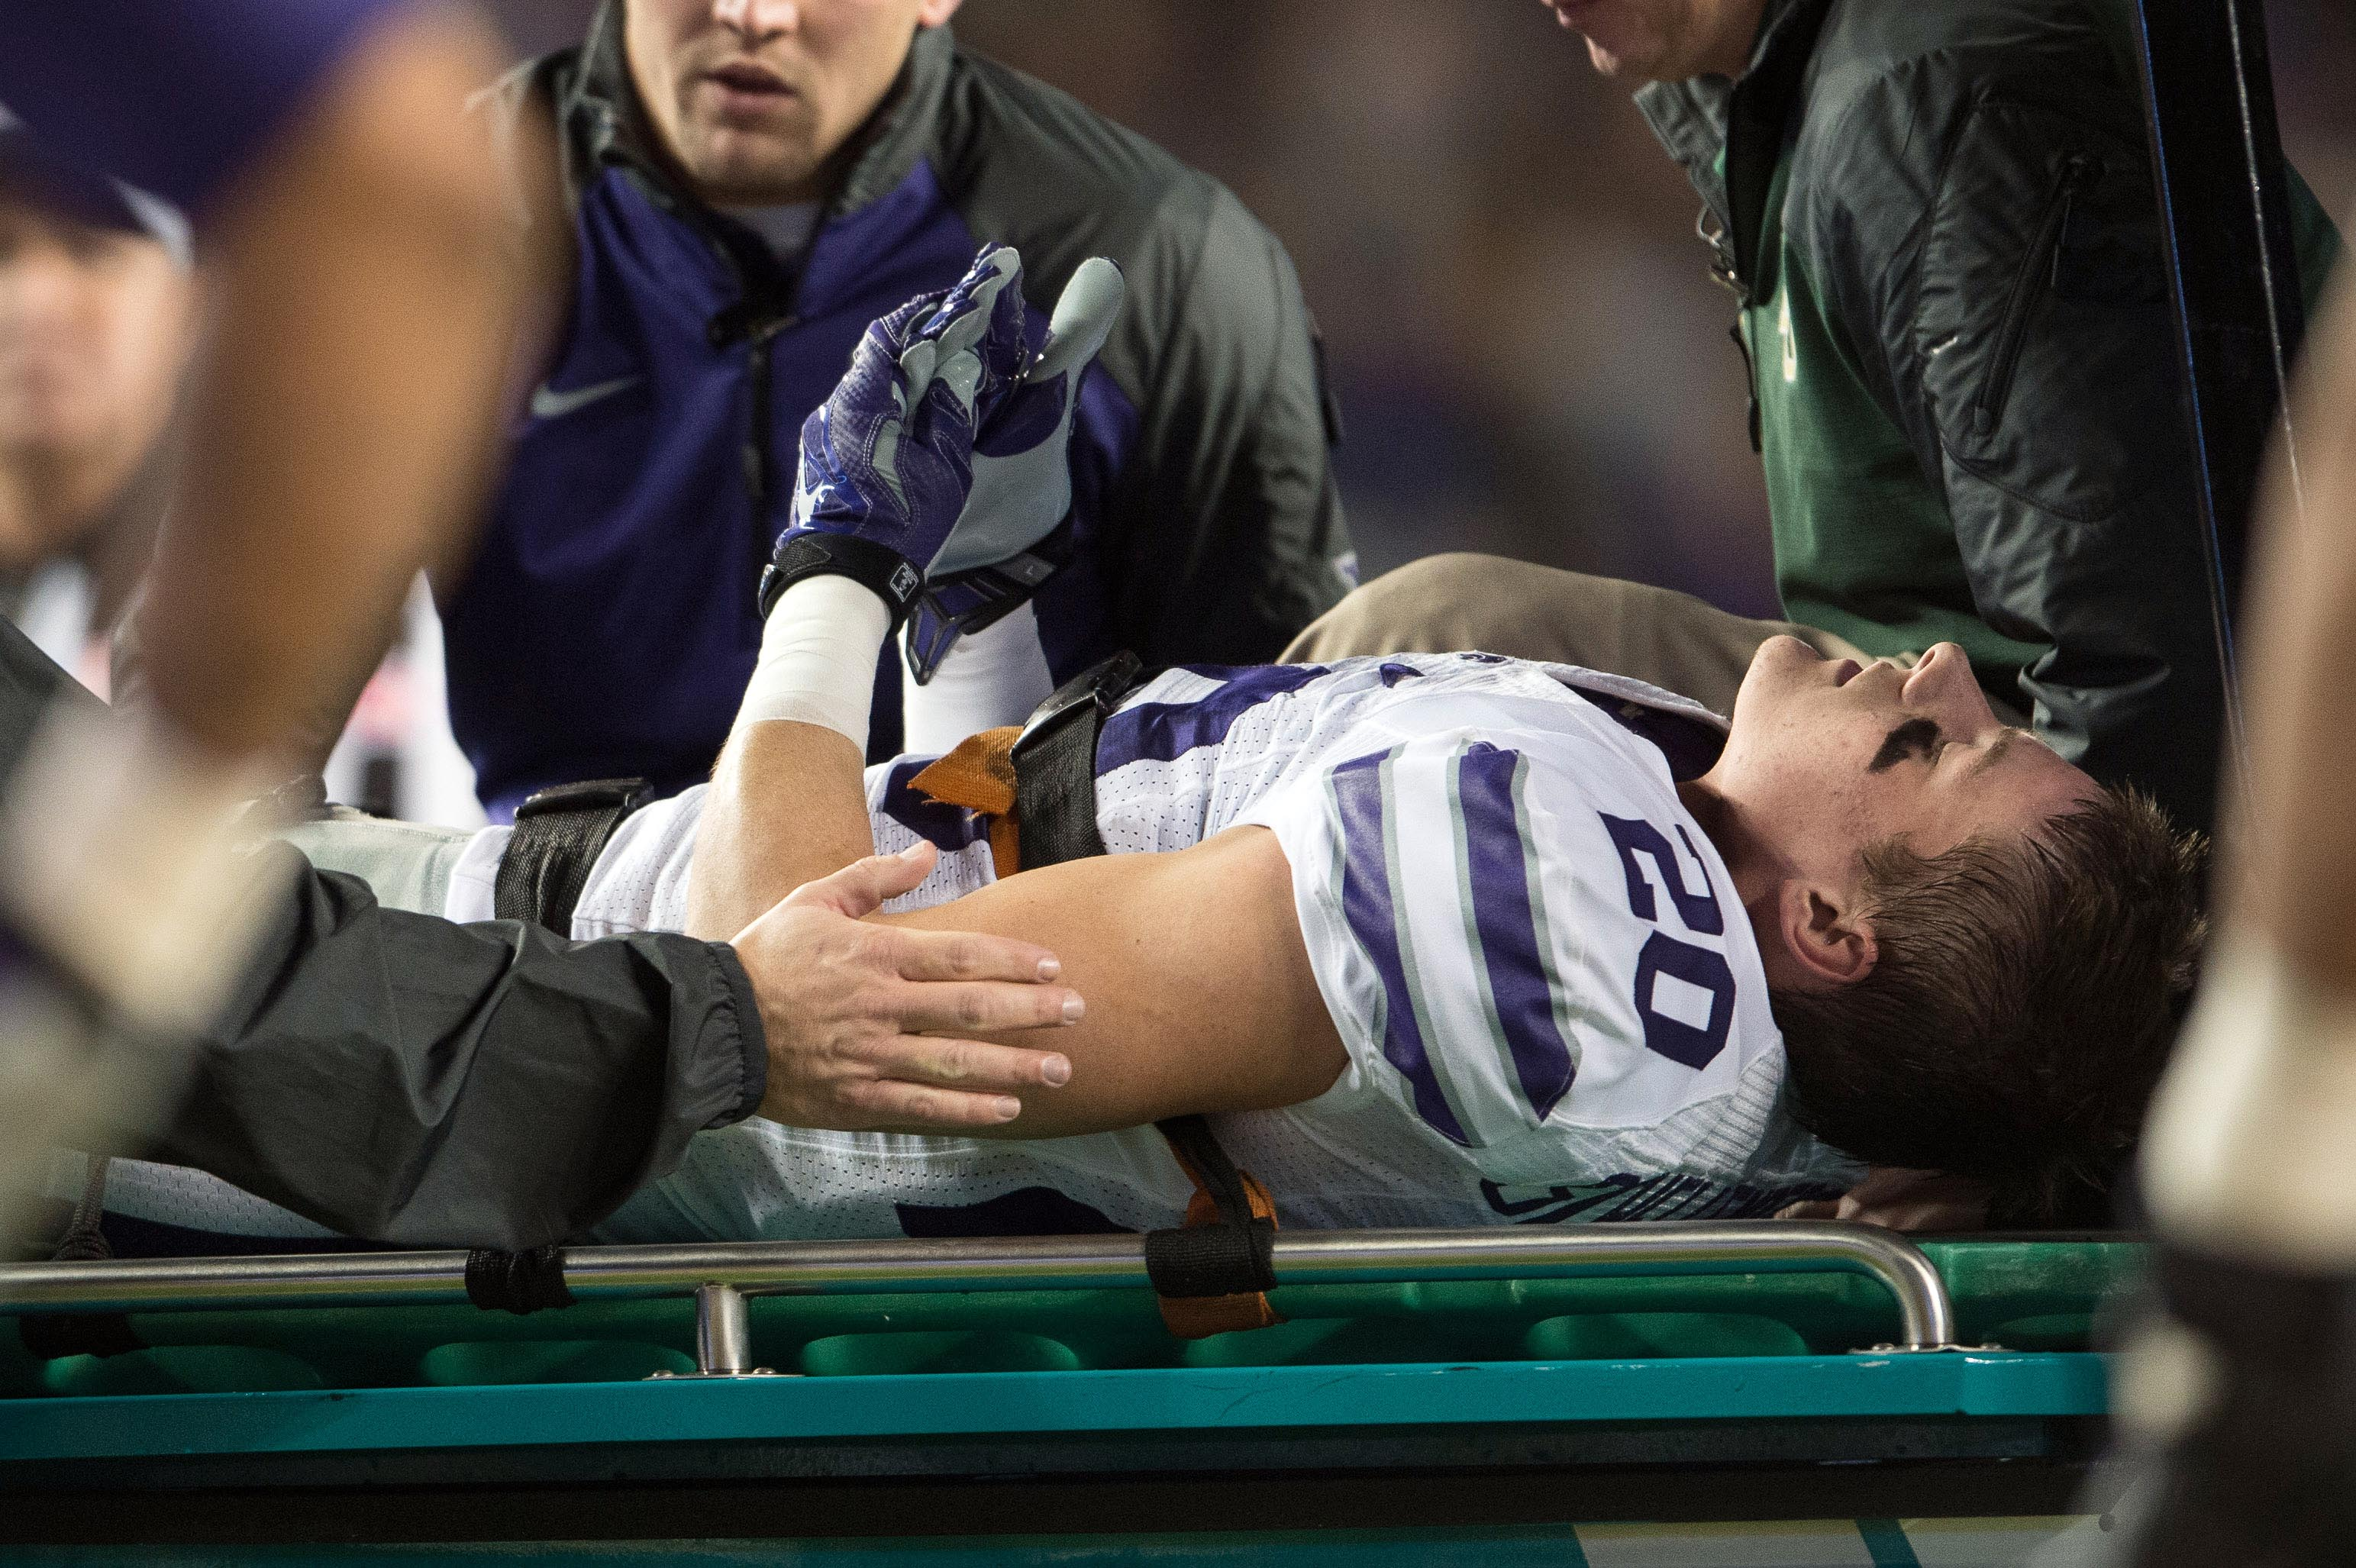 An unfortunate season ending leg injury to Dylan Schellenberg means Baylor was his last game.